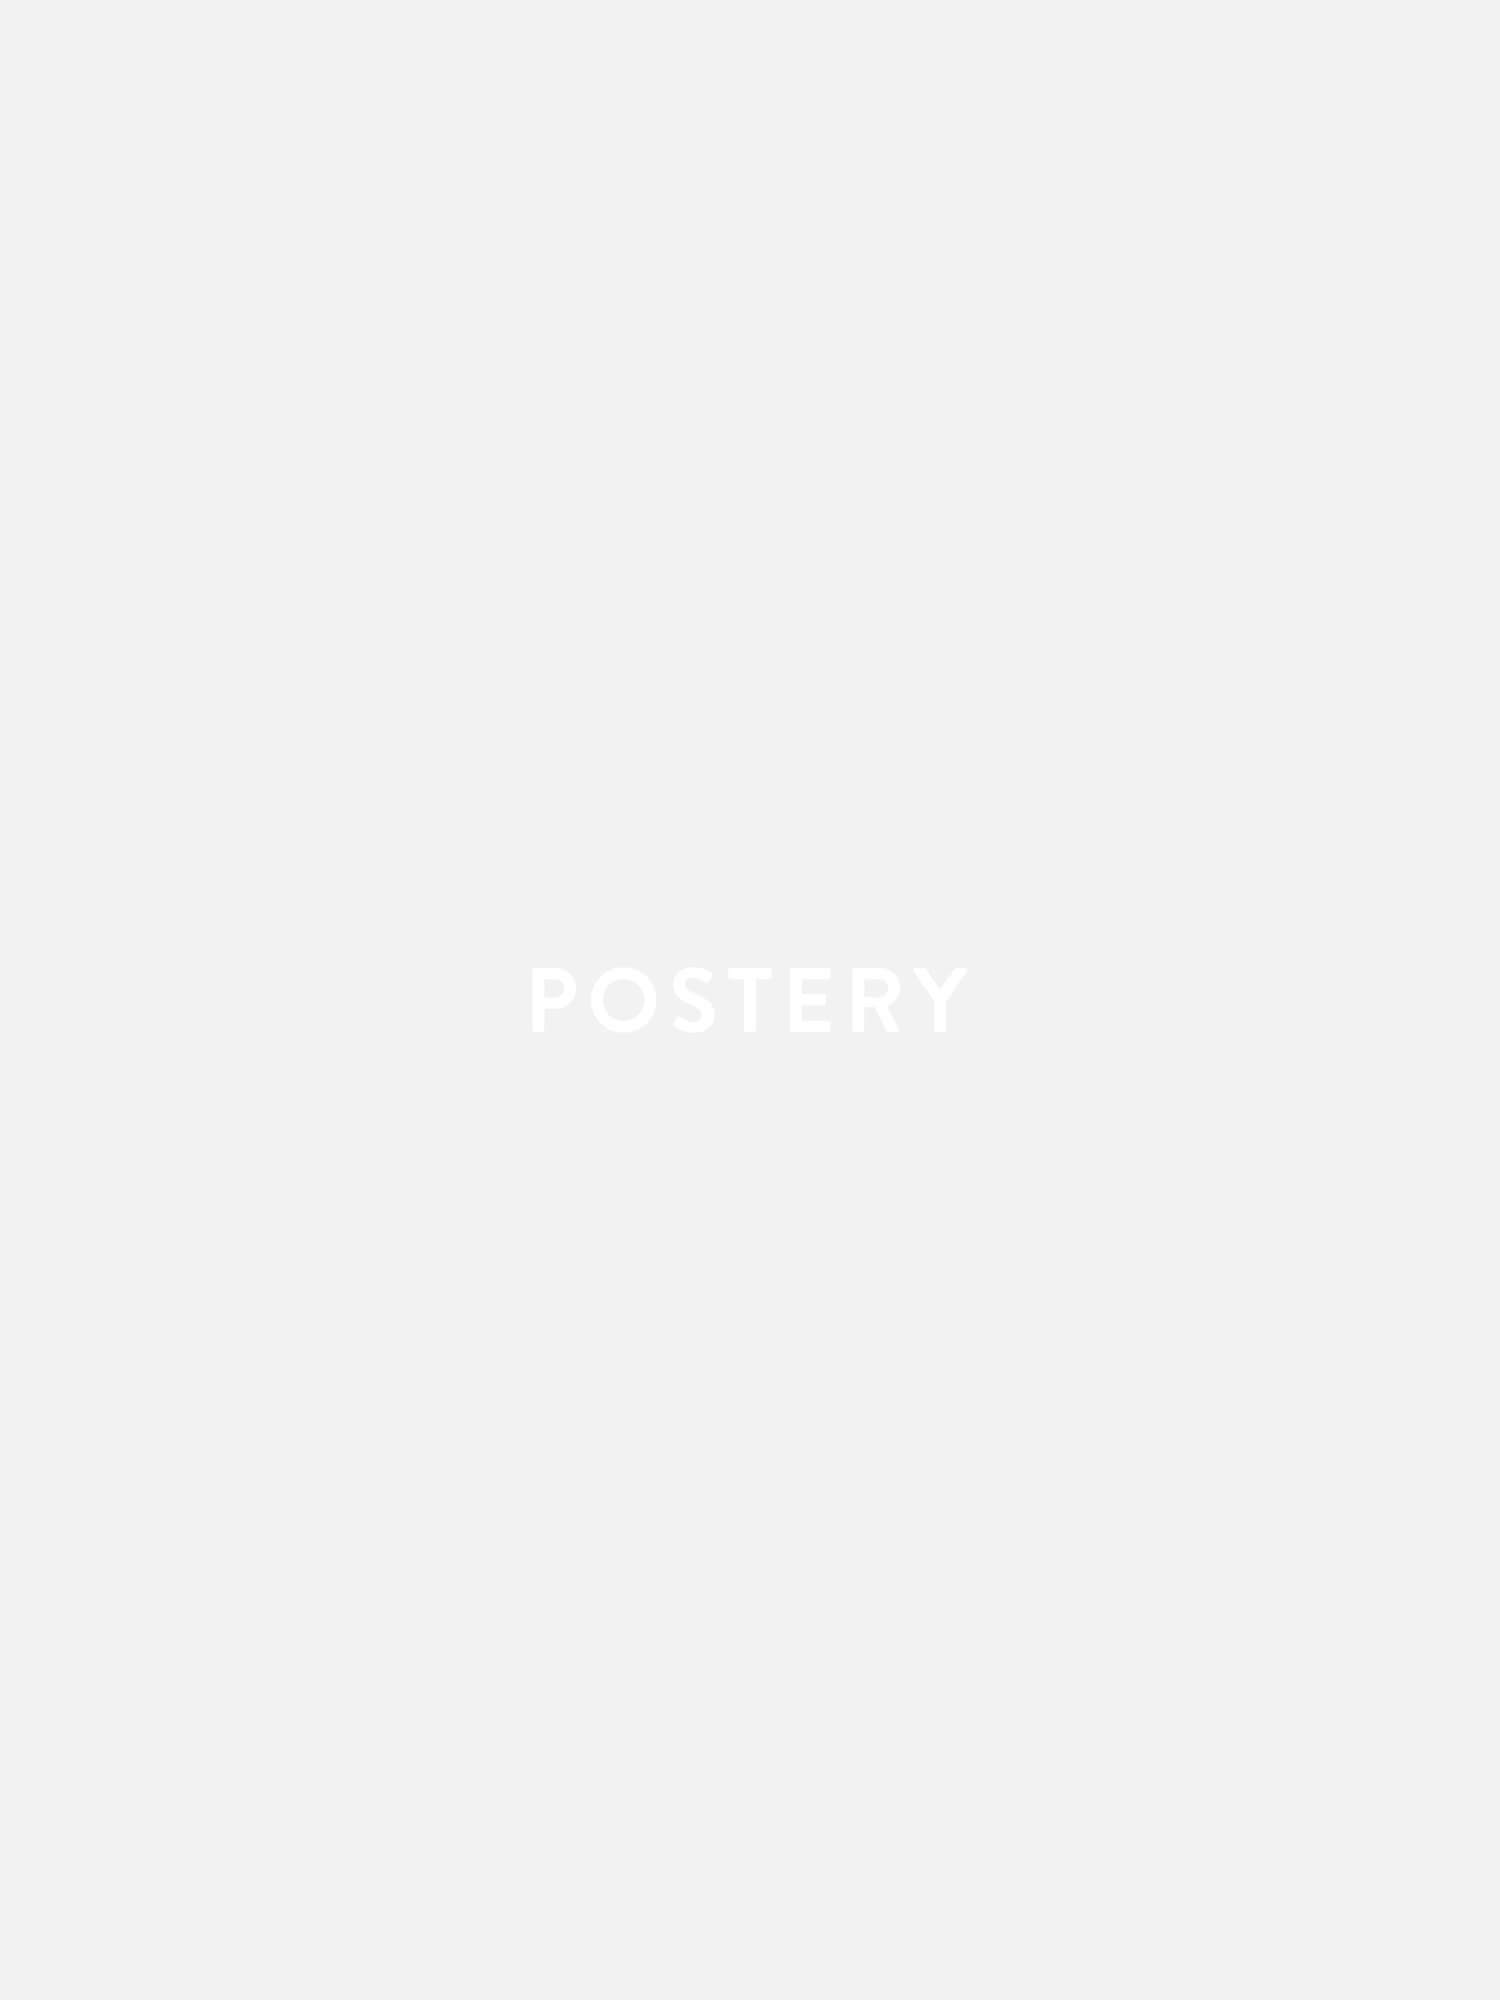 Abstract Cliff no.1 Poster